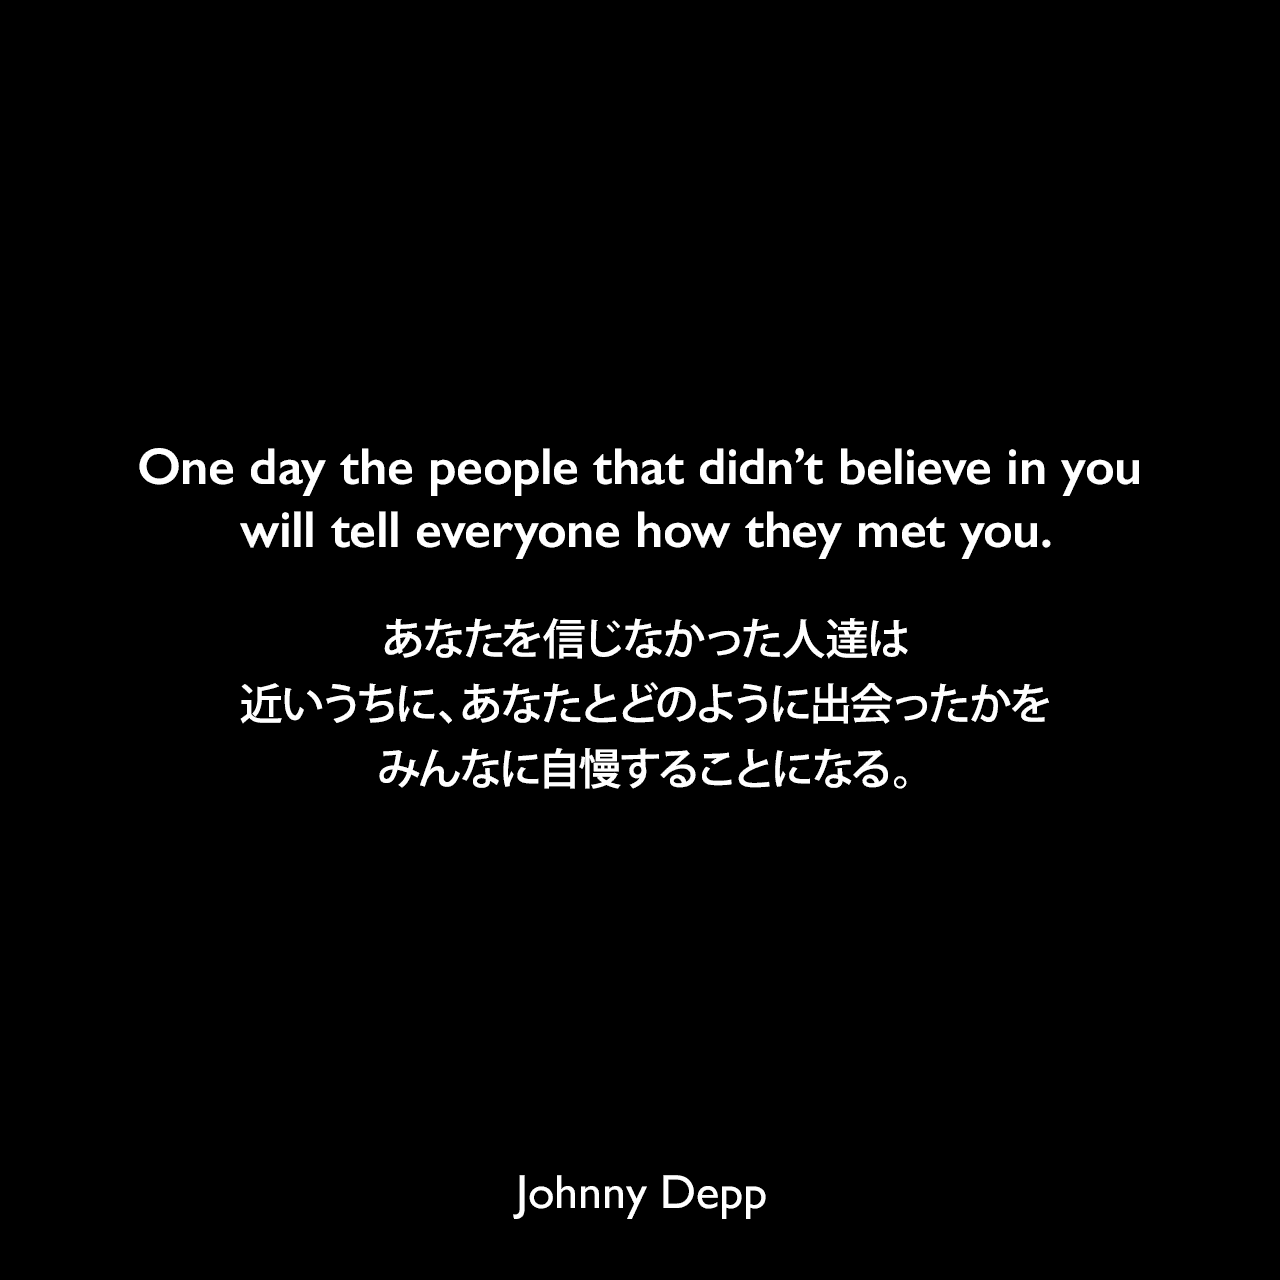 One day the people that didn't believe in you will tell everyone how they met you.あなたを信じなかった人達は、近いうちに、あなたとどのように出会ったかをみんなに自慢することになる。Johnny Depp